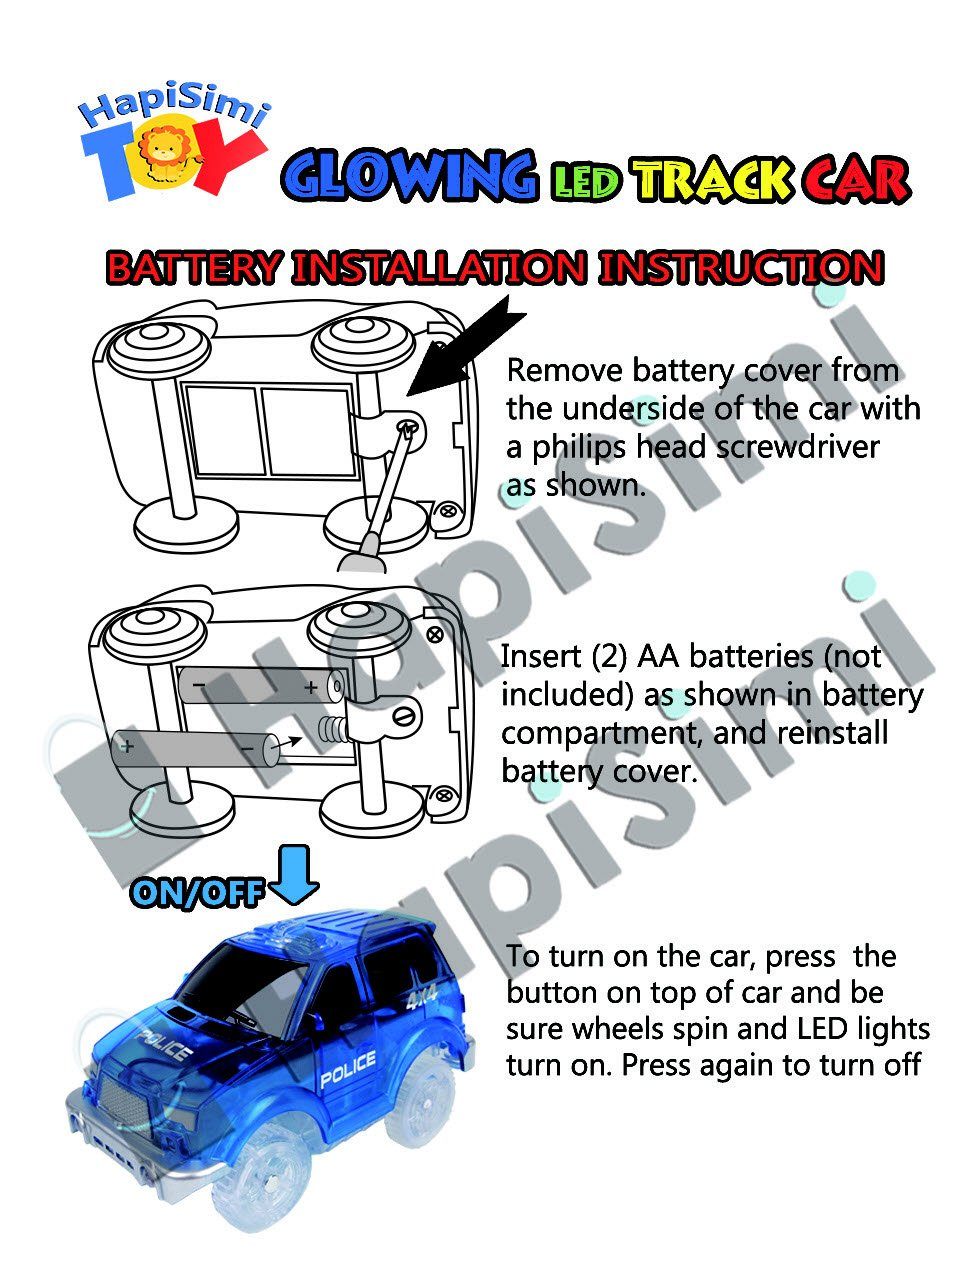 Track Car 3 Pack, Green Military Jeep, Blue Police and School Bus Car, with 5 LED Lights, Compatible with Most Tracks Including Magic Tracks, Neo Twister Tracks, Boys and Girls by HapiSimi (Image #9)